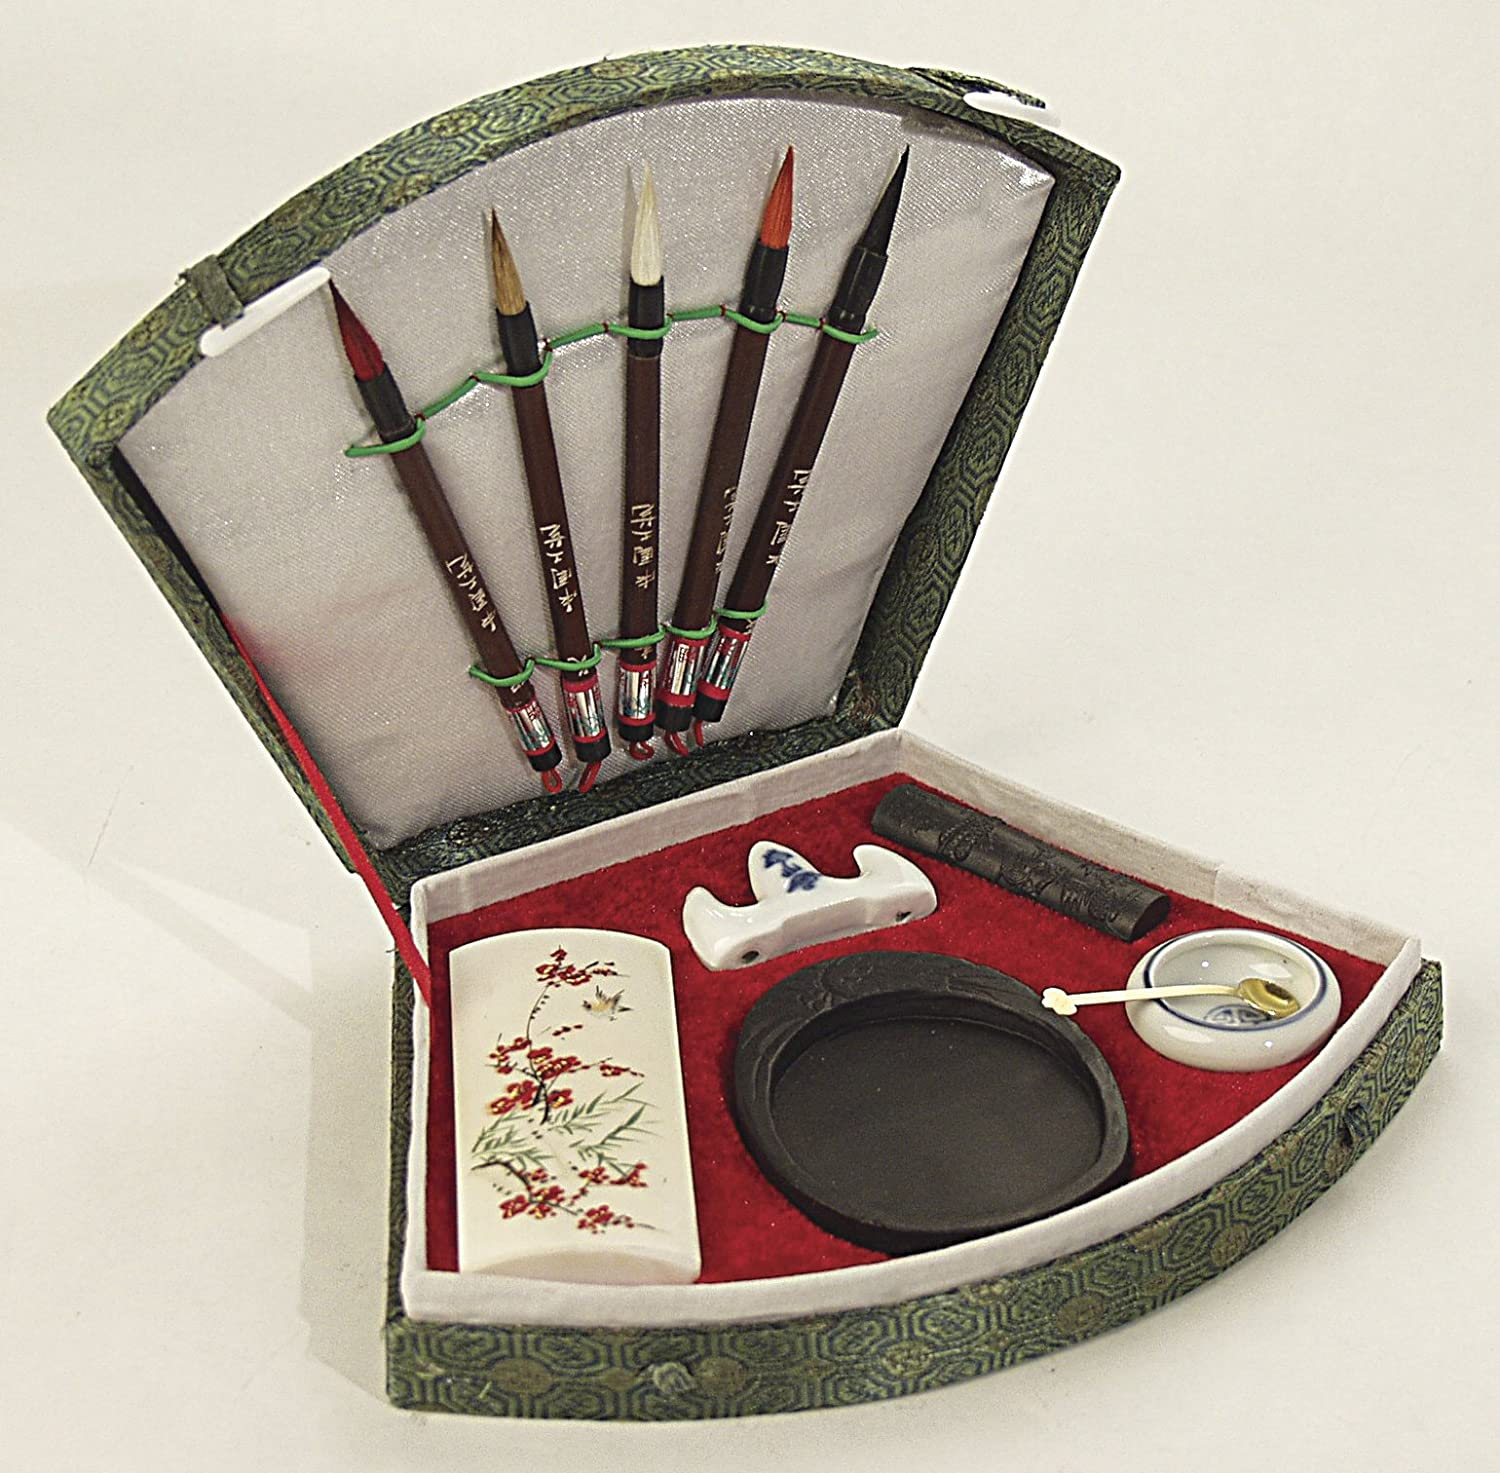 Art Advantage art-s8729 3 Piece Wolf Hair Sumi Brush set Set Sumi con pennelli e inchiostro, 6 pezzi S8752